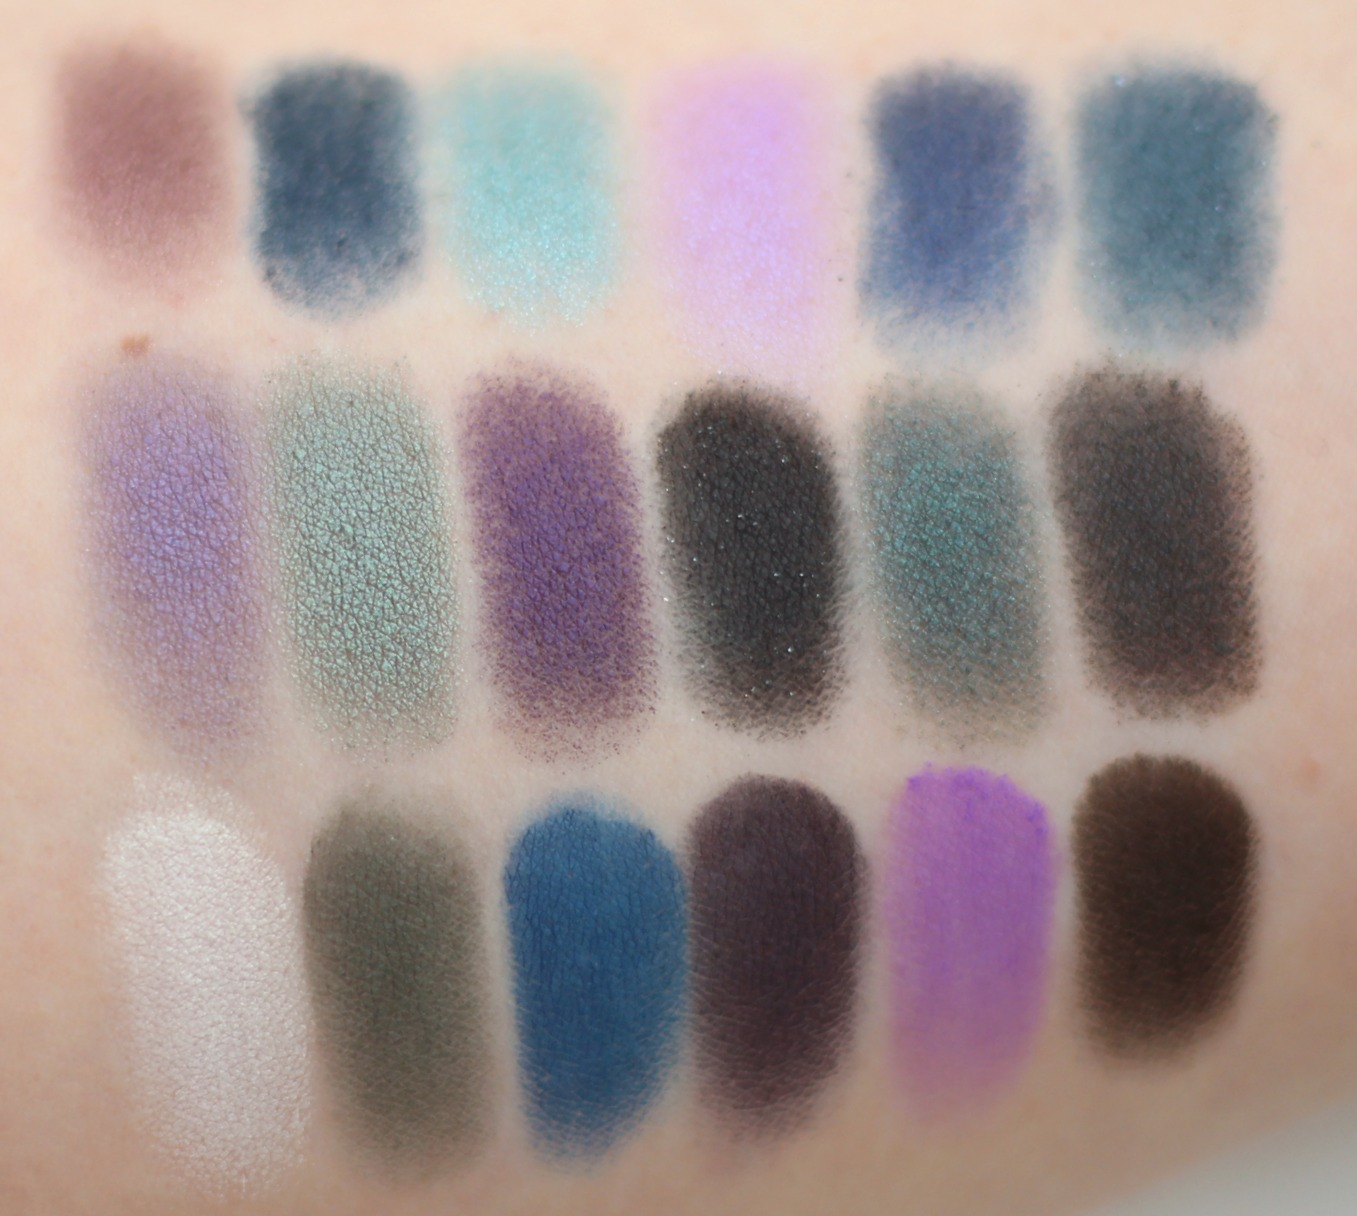 Give Them Nightmares palette from Makeup Revolution swatches